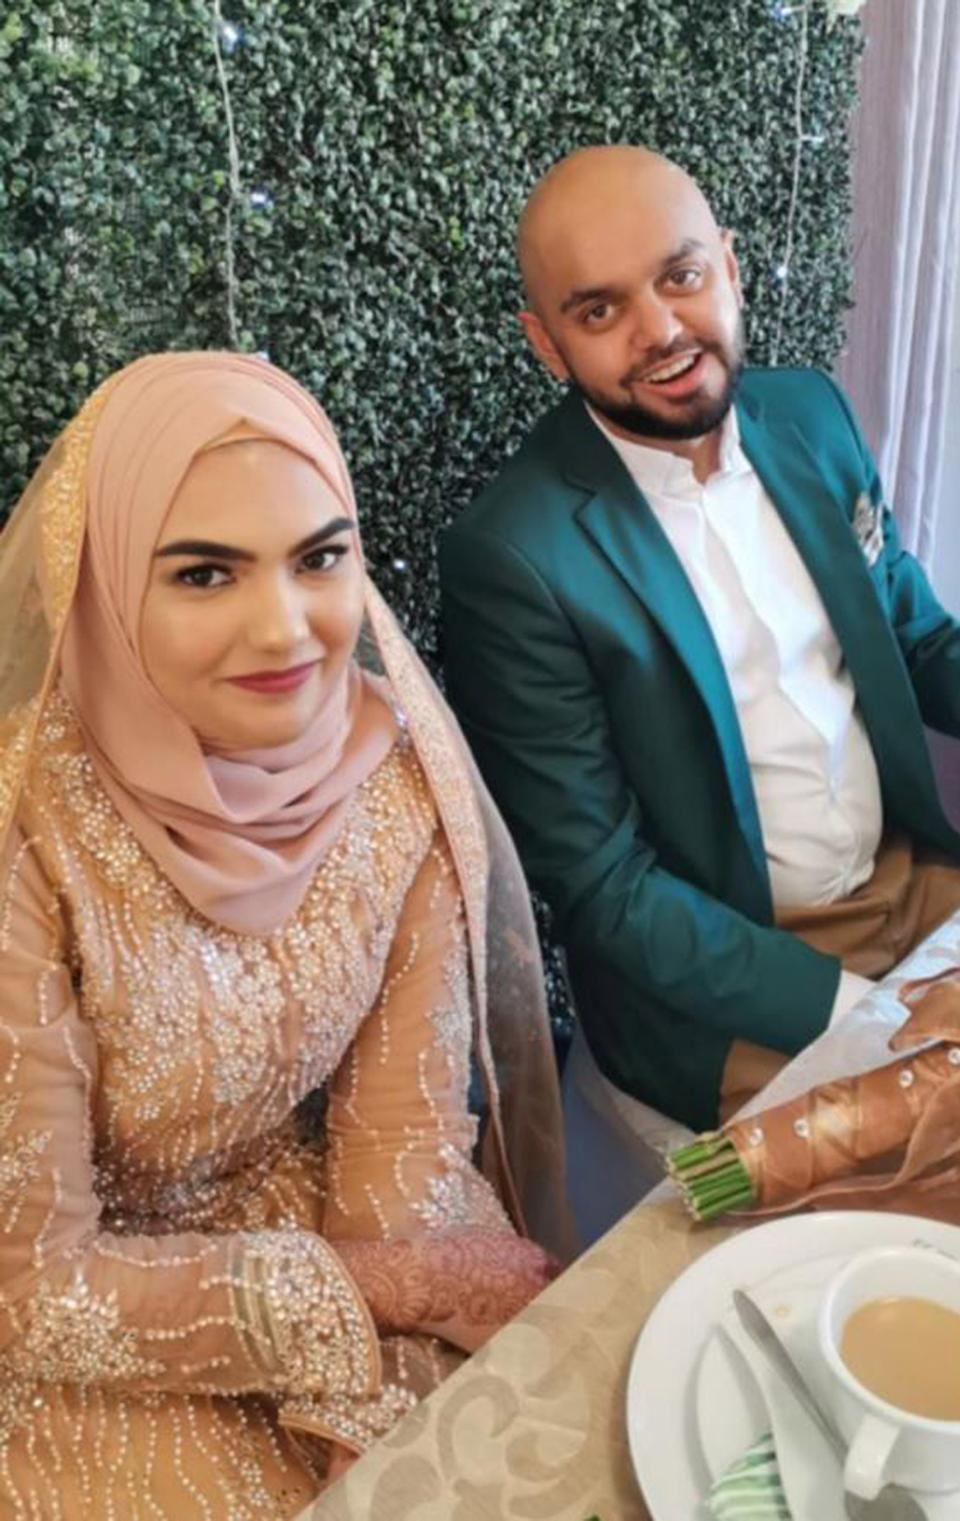 Zaheer Sarang and Nabeelah Khan were found dead in the shower. Source: Newsflash/Australscope